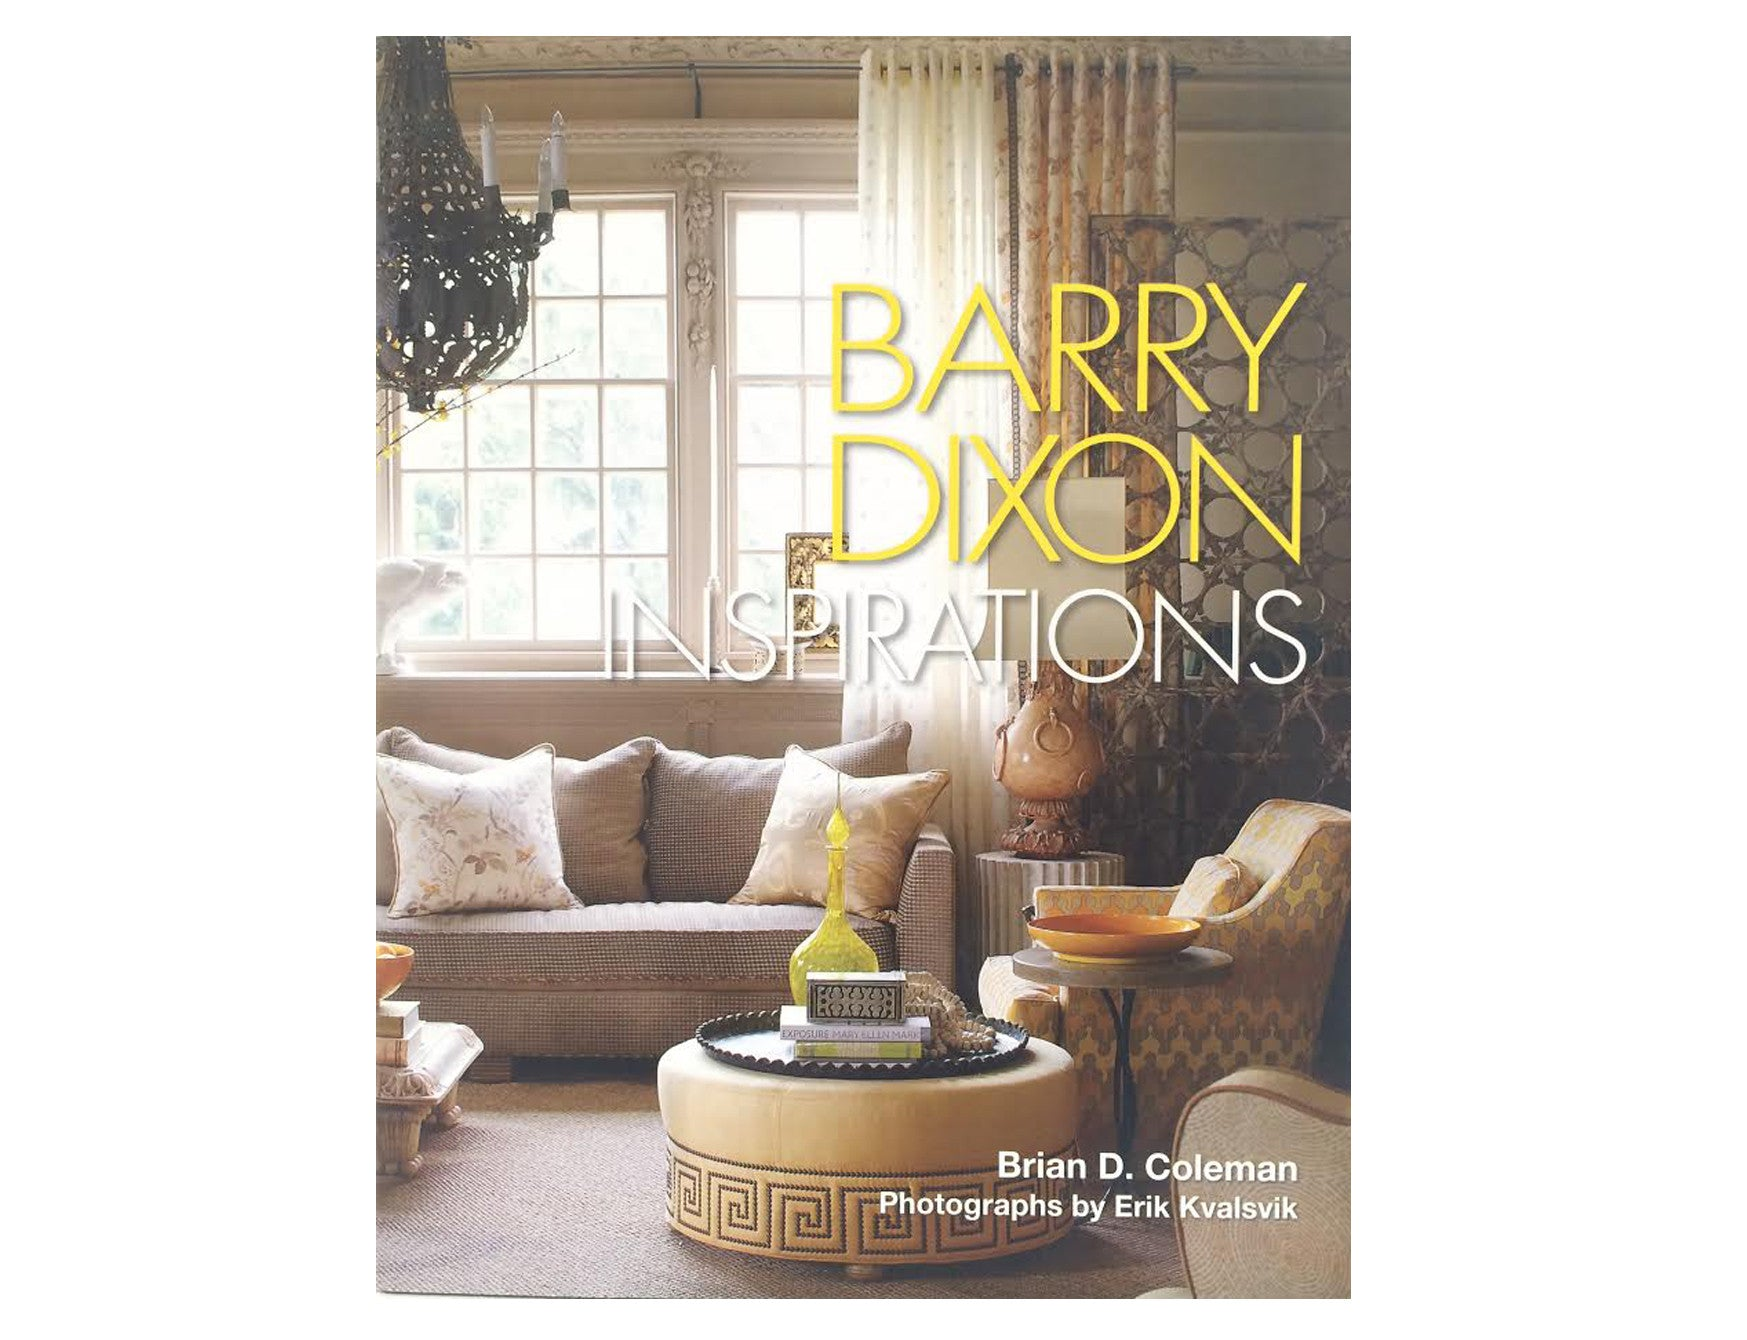 Barry Dixon Inspirations